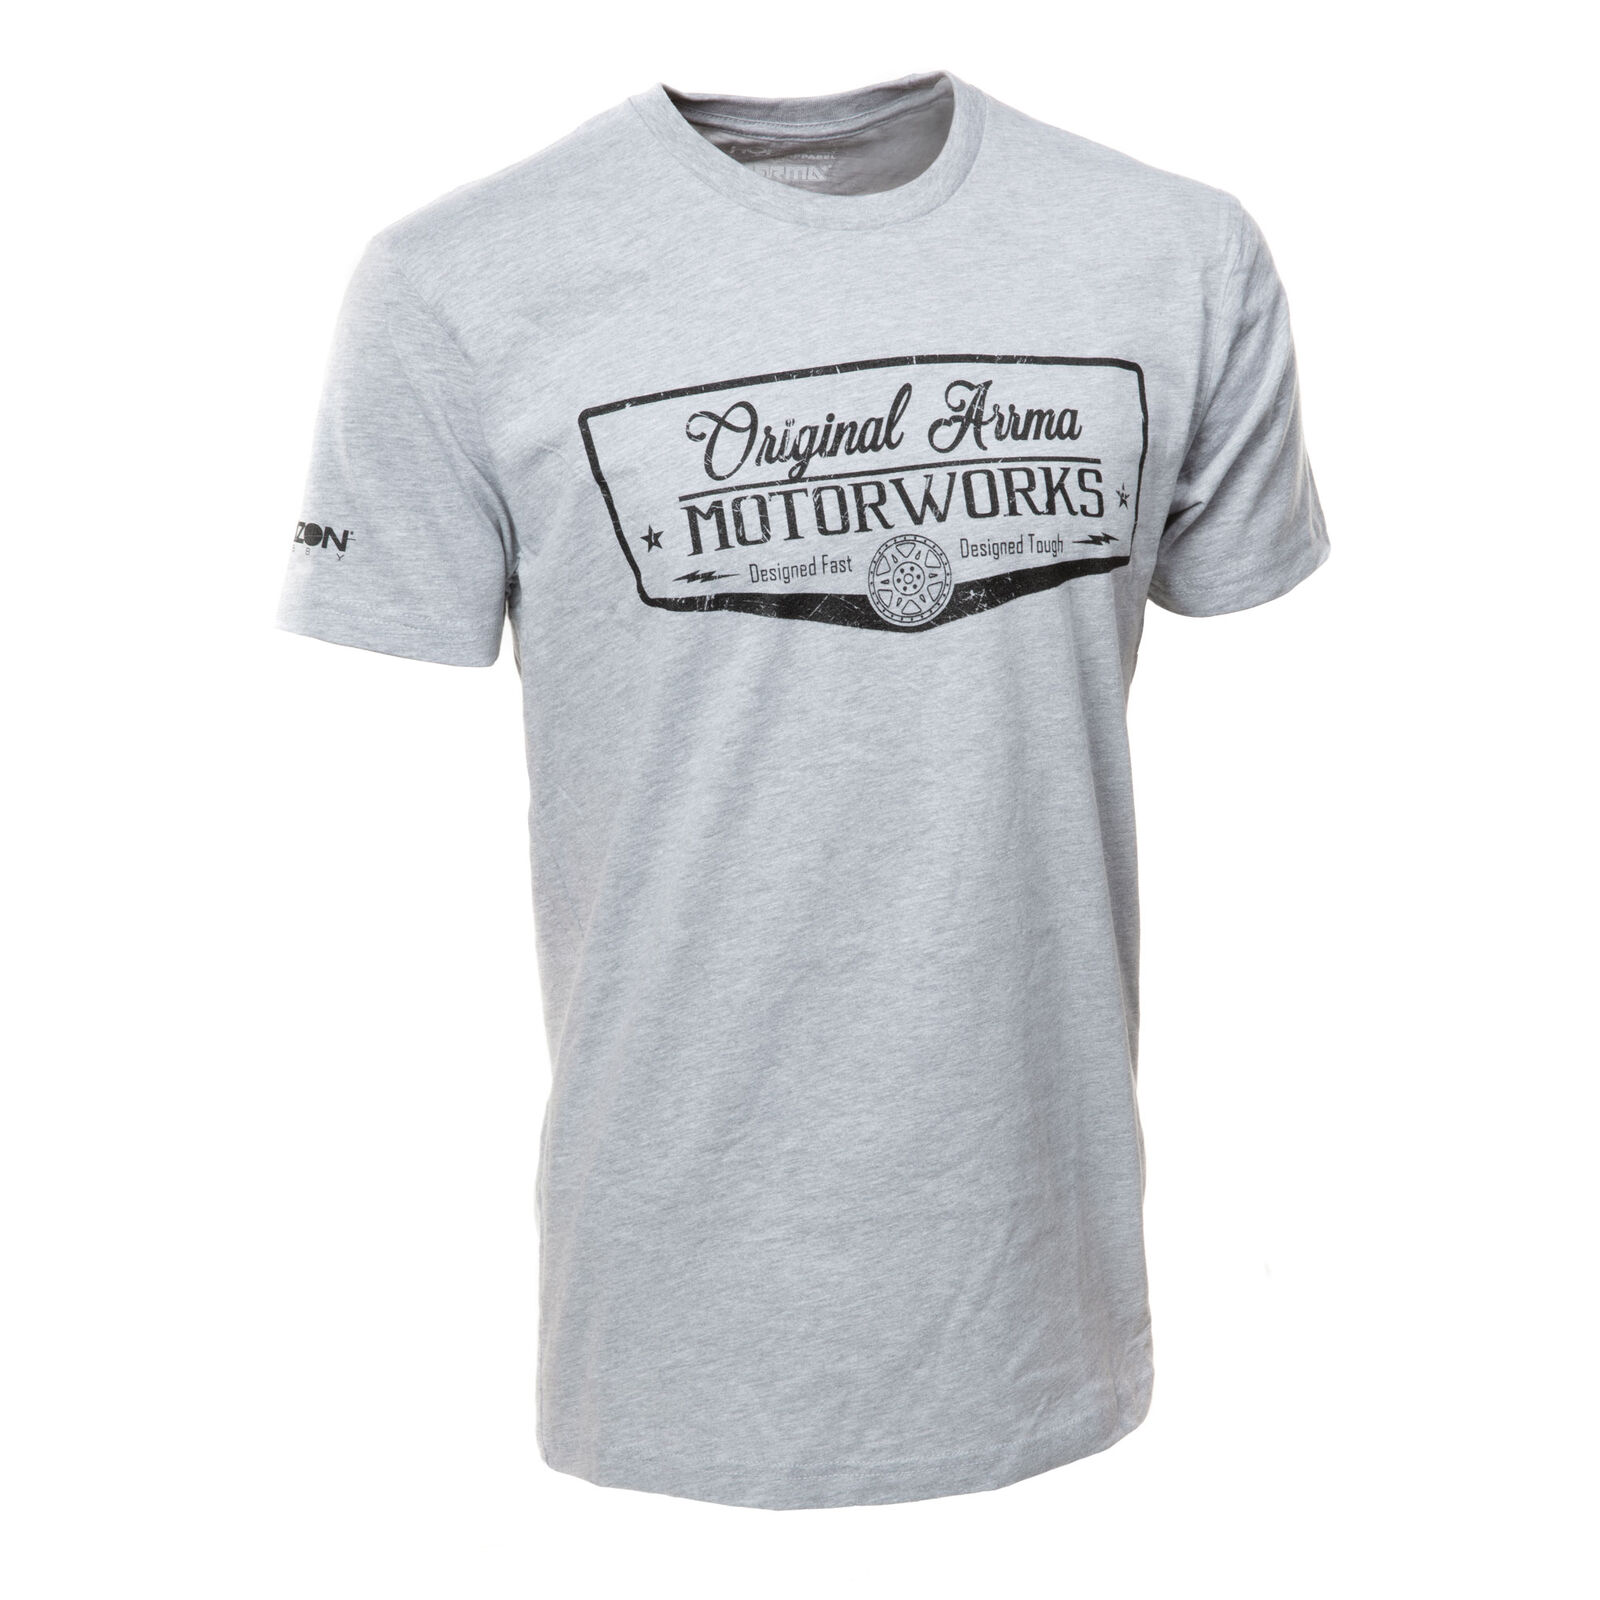 Motorworks T-Shirt, Large